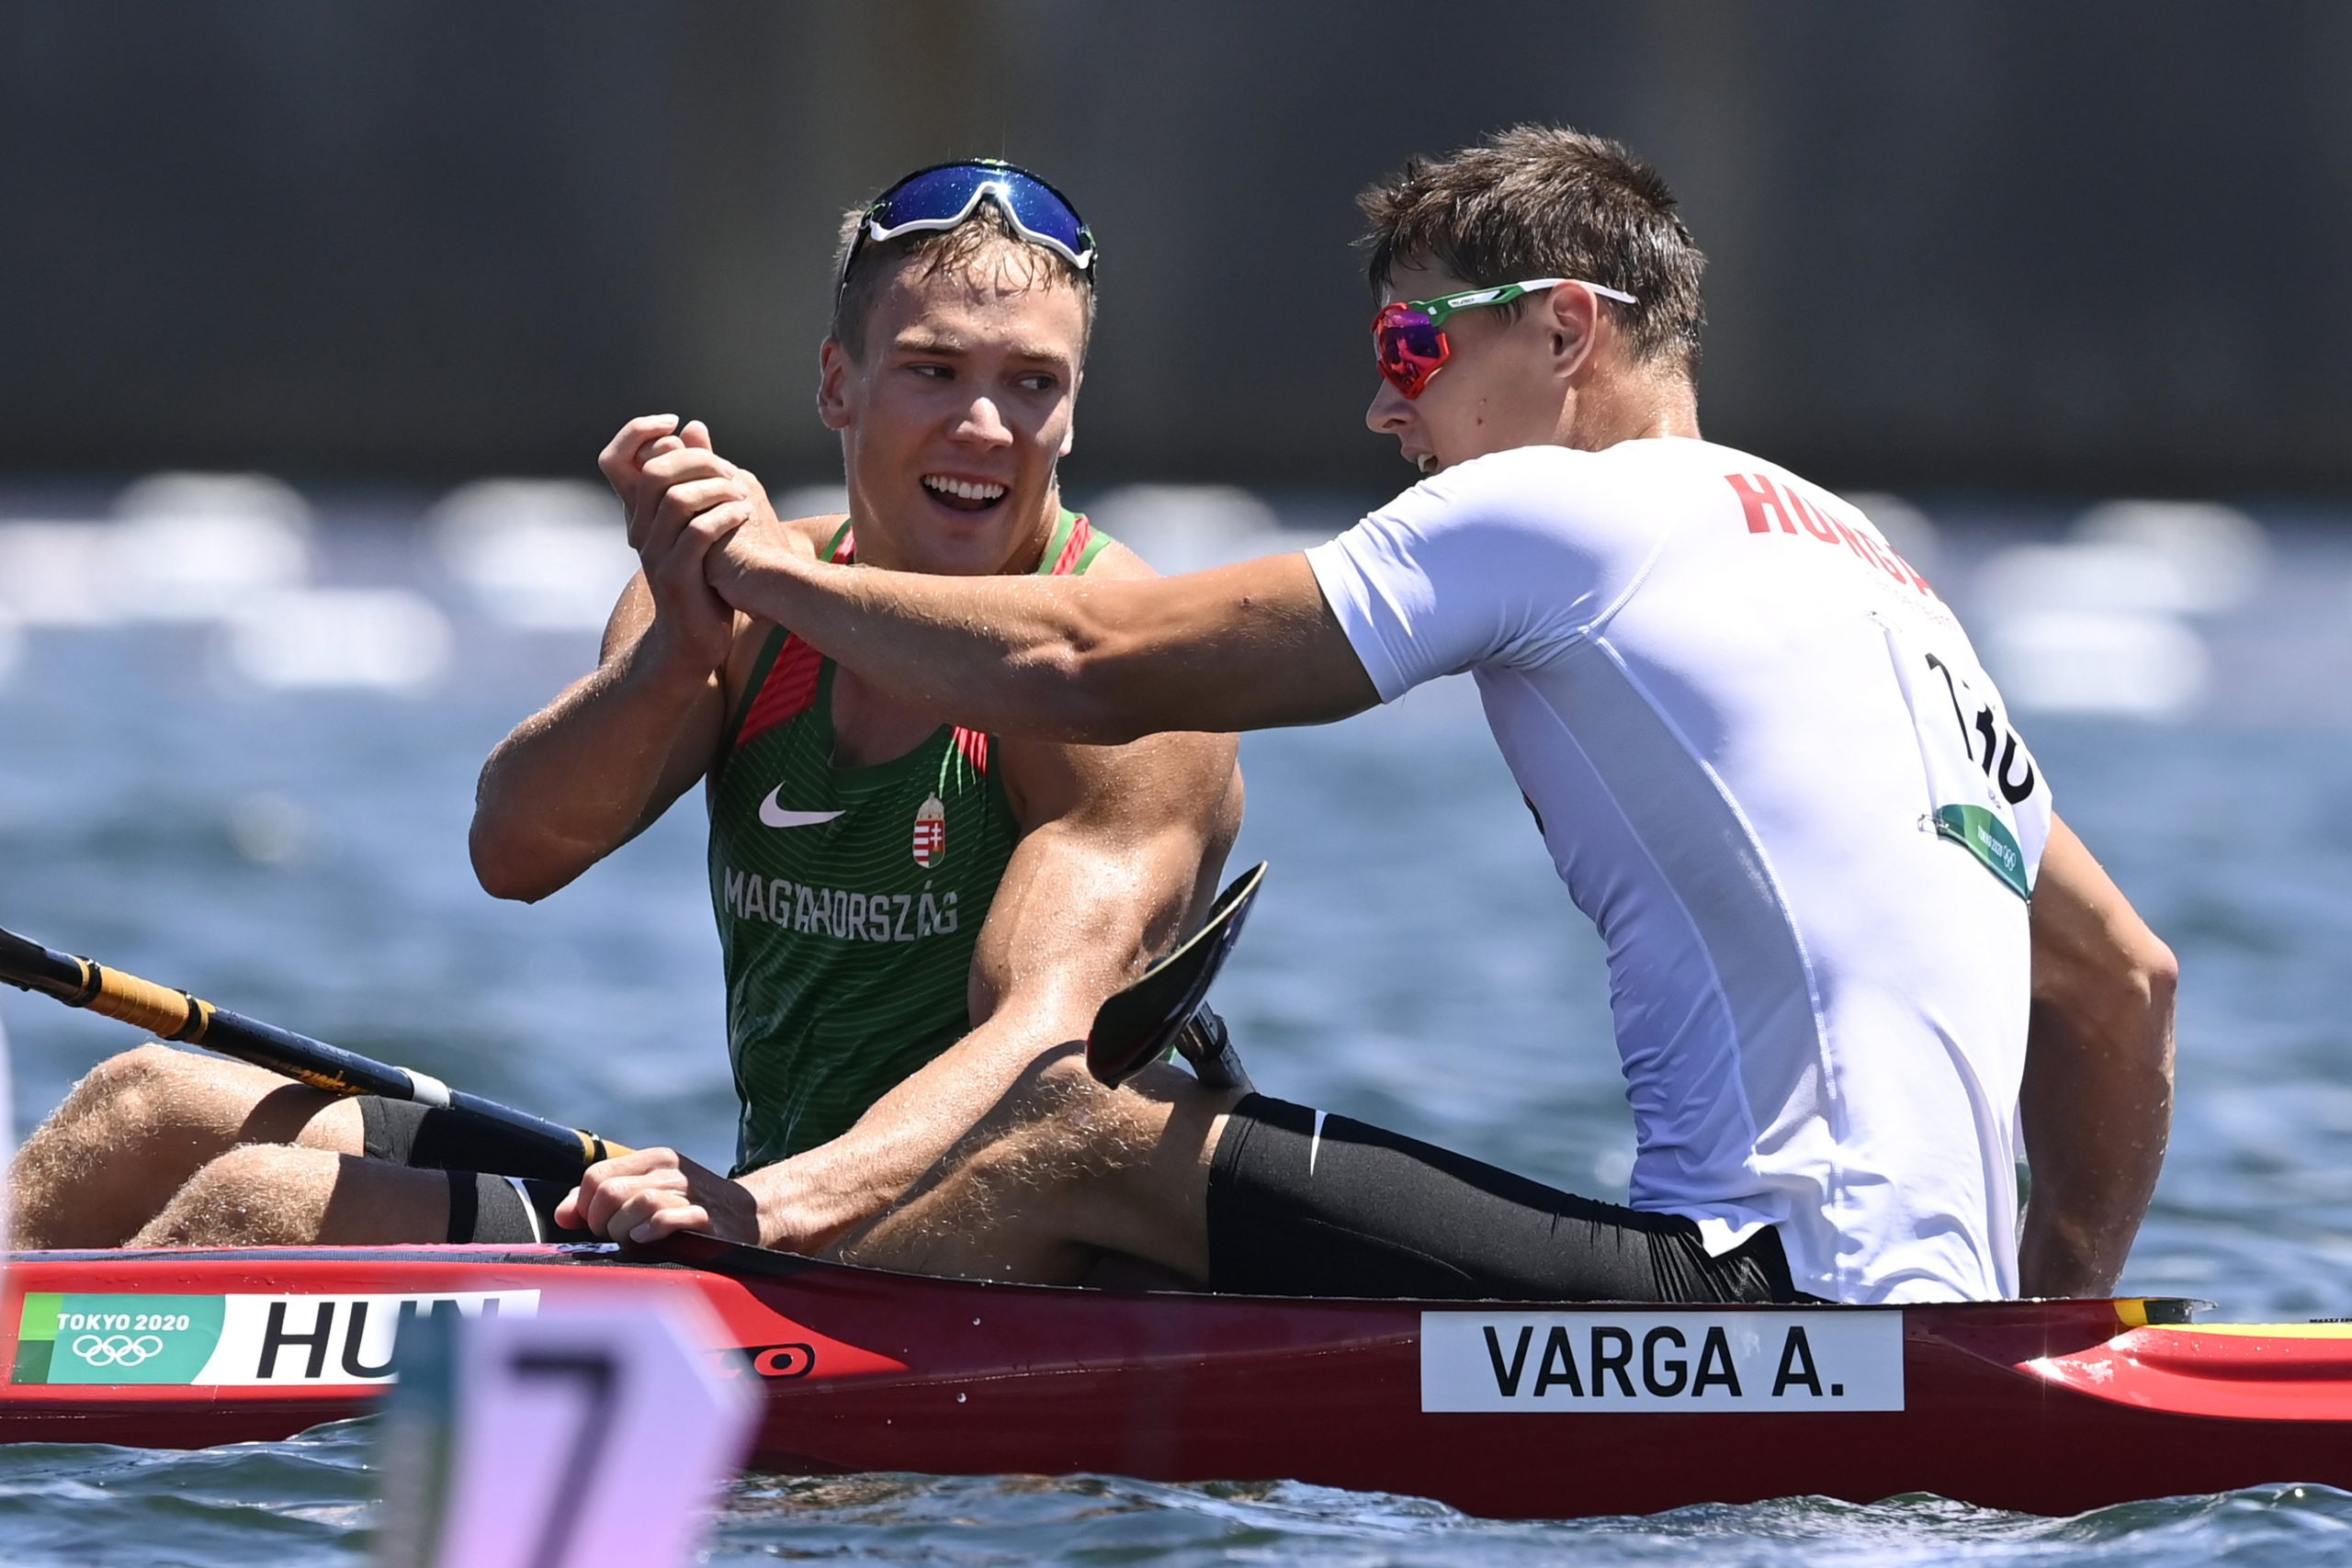 Kopasz Wins Olympic Gold in Men's Kayak Single 1000m after 53 Years, Varga Finishes Second